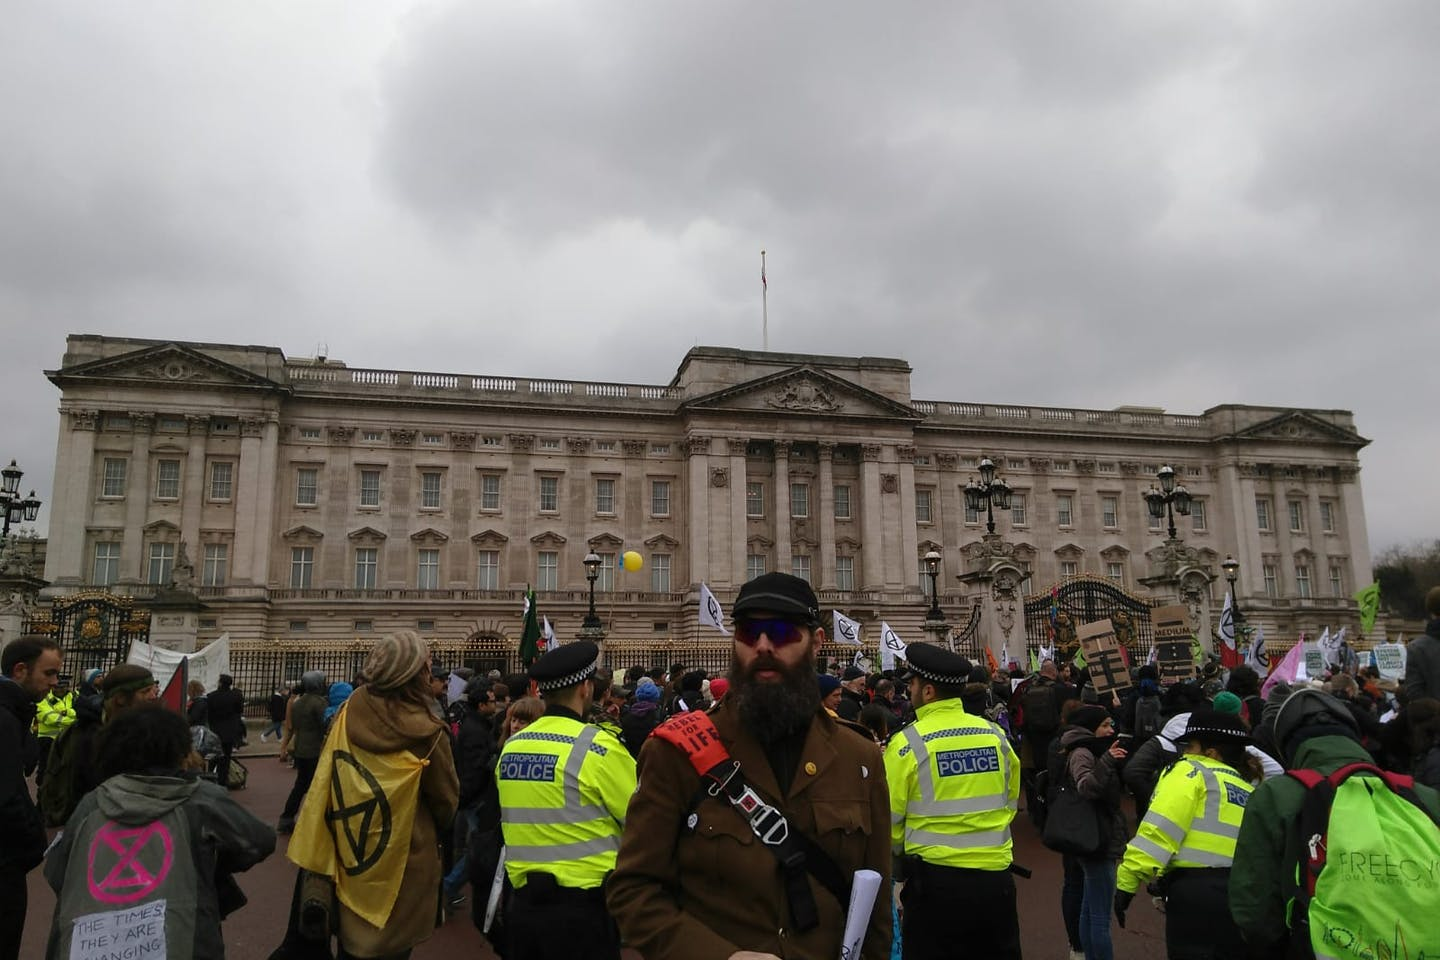 Protesters gather outside Buckingham Palace to protest against the British government's failure to take action to halt dangerous climate change. Image: Kevin Wing